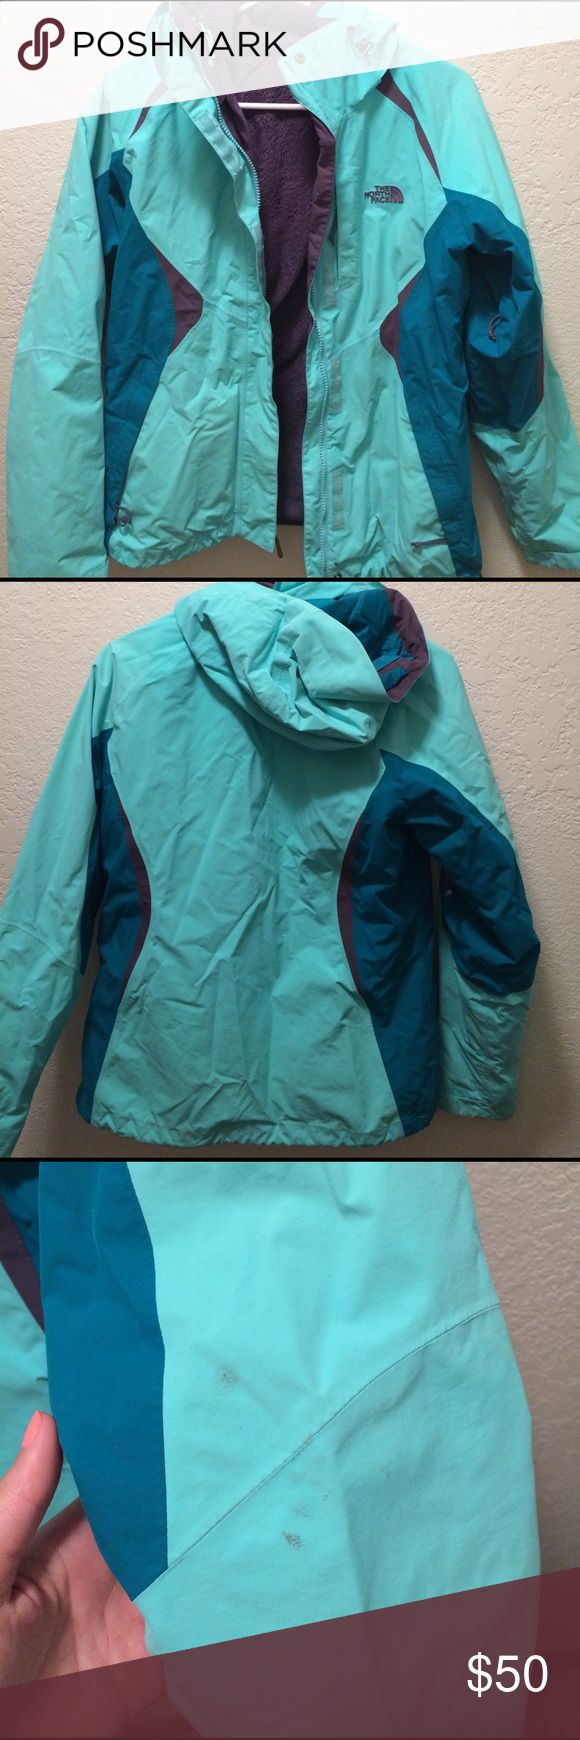 The North Face Small 2 in 1 Winter Coat Size small winter coat from The North Face in great condition! Only worn for 1 year. Has 2 parts - a fleece inside and outer shell. One pocket zipper is broke. Only a couple small stains as shown in picture. Will sell the inside only which is like new for $40. The North Face Jackets & Coats